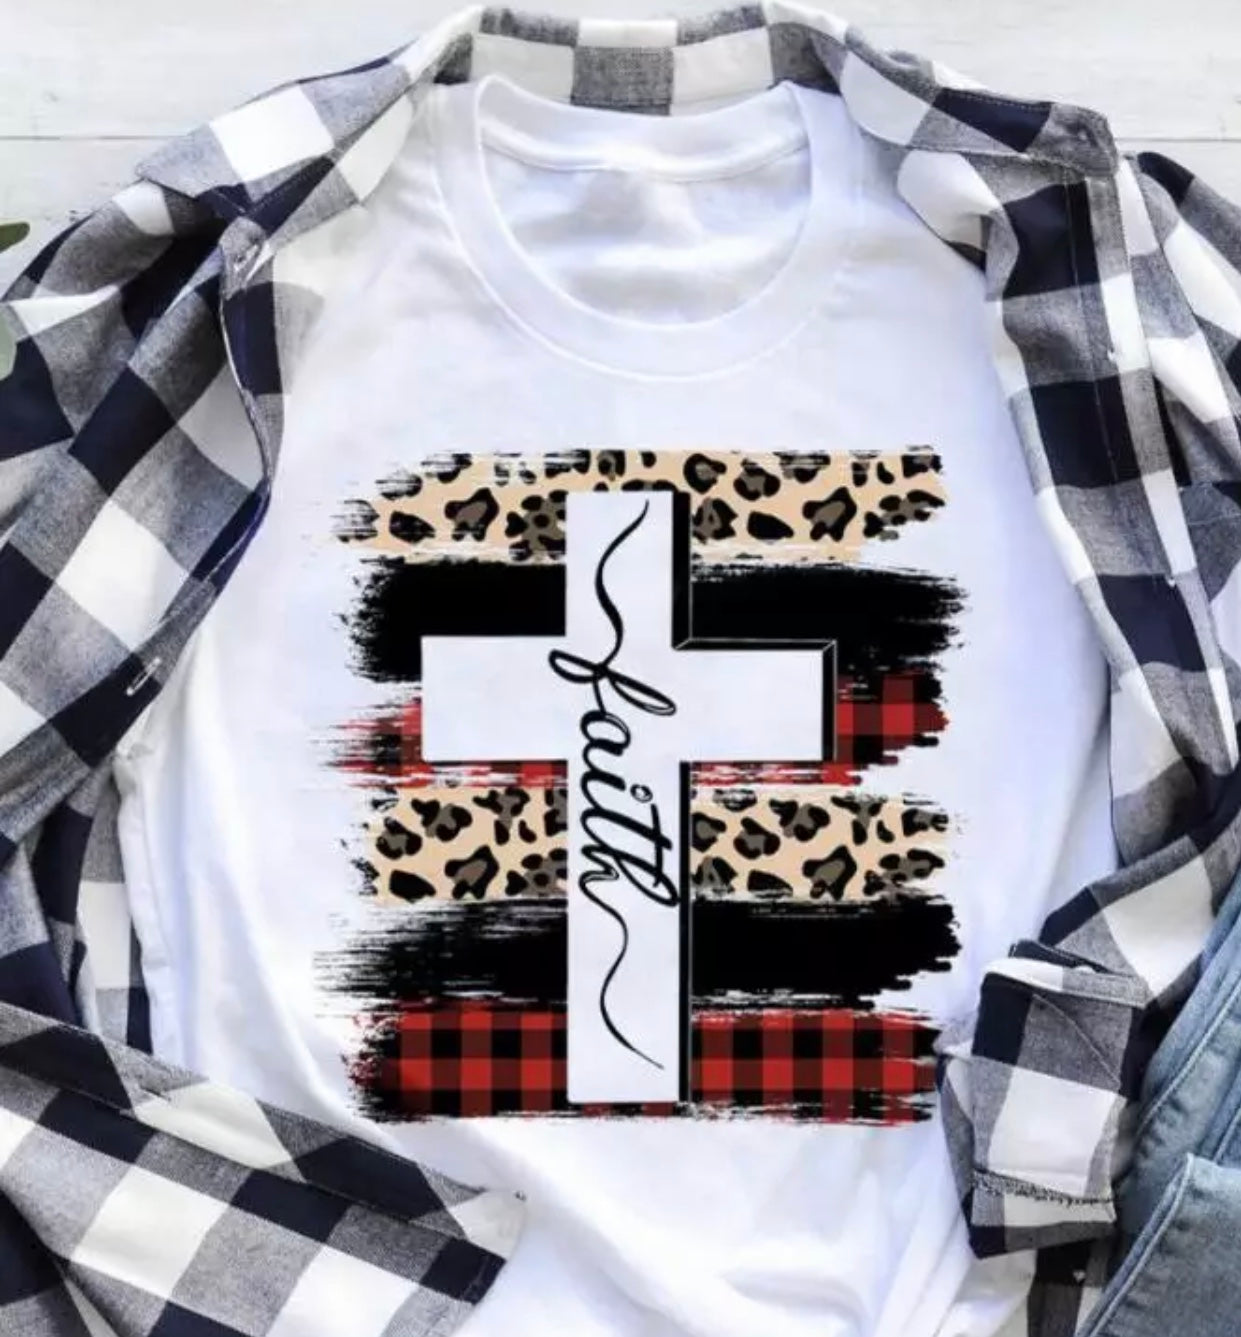 Ecomodbox SMALL Cotton Tee - Faith Cross Plaid Leopard Printed T-Shirt